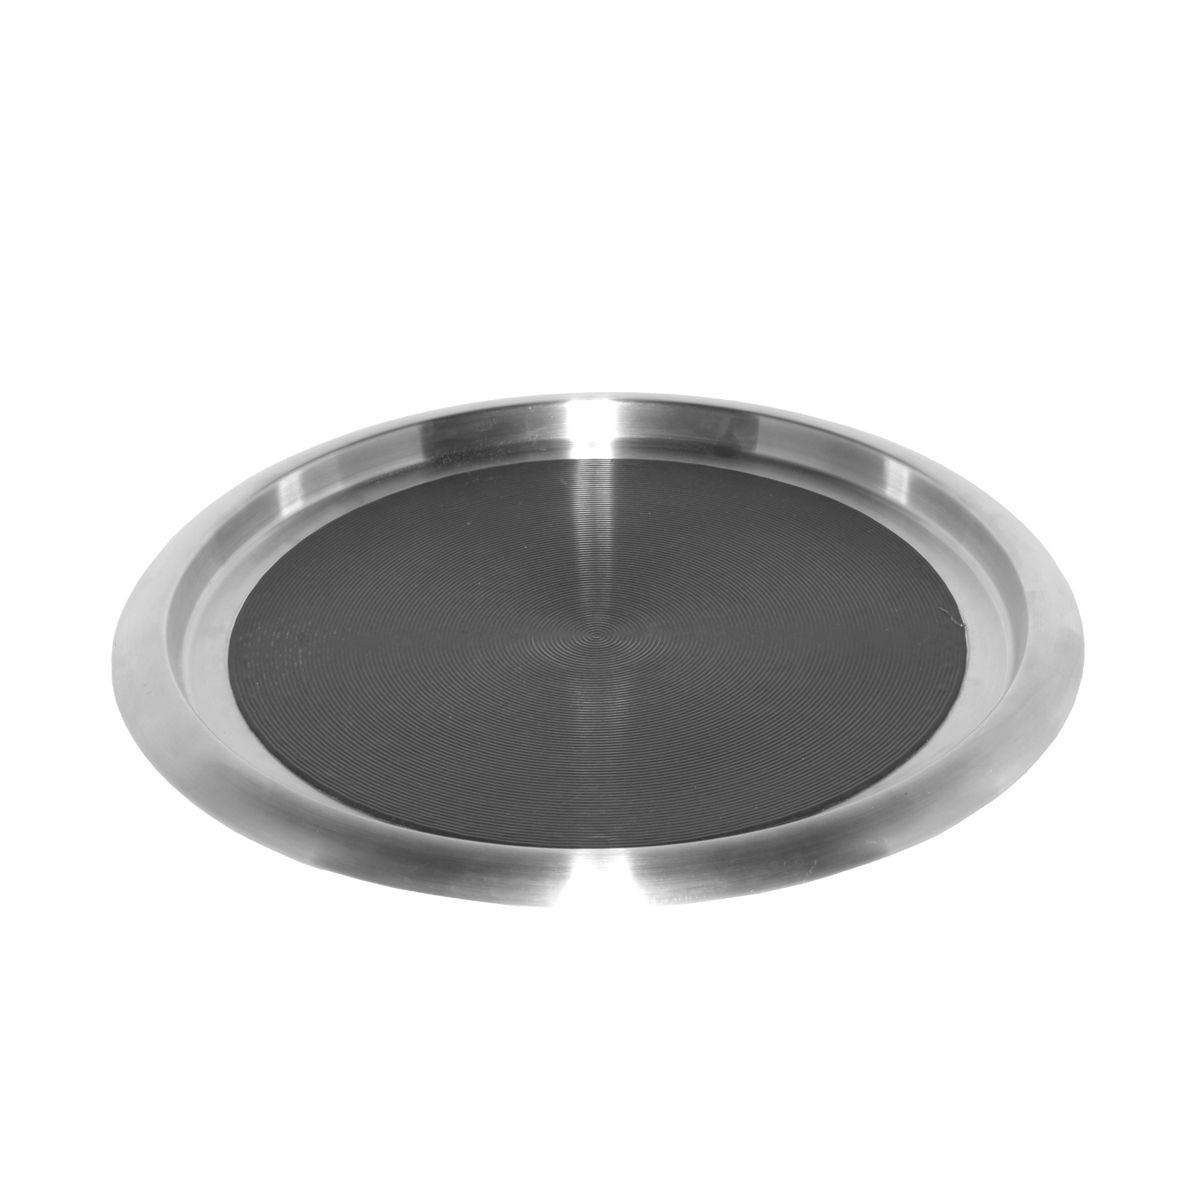 Service Ideas TR1614SR Non-Slip Tray with Rubber Insert, Stainless 16""